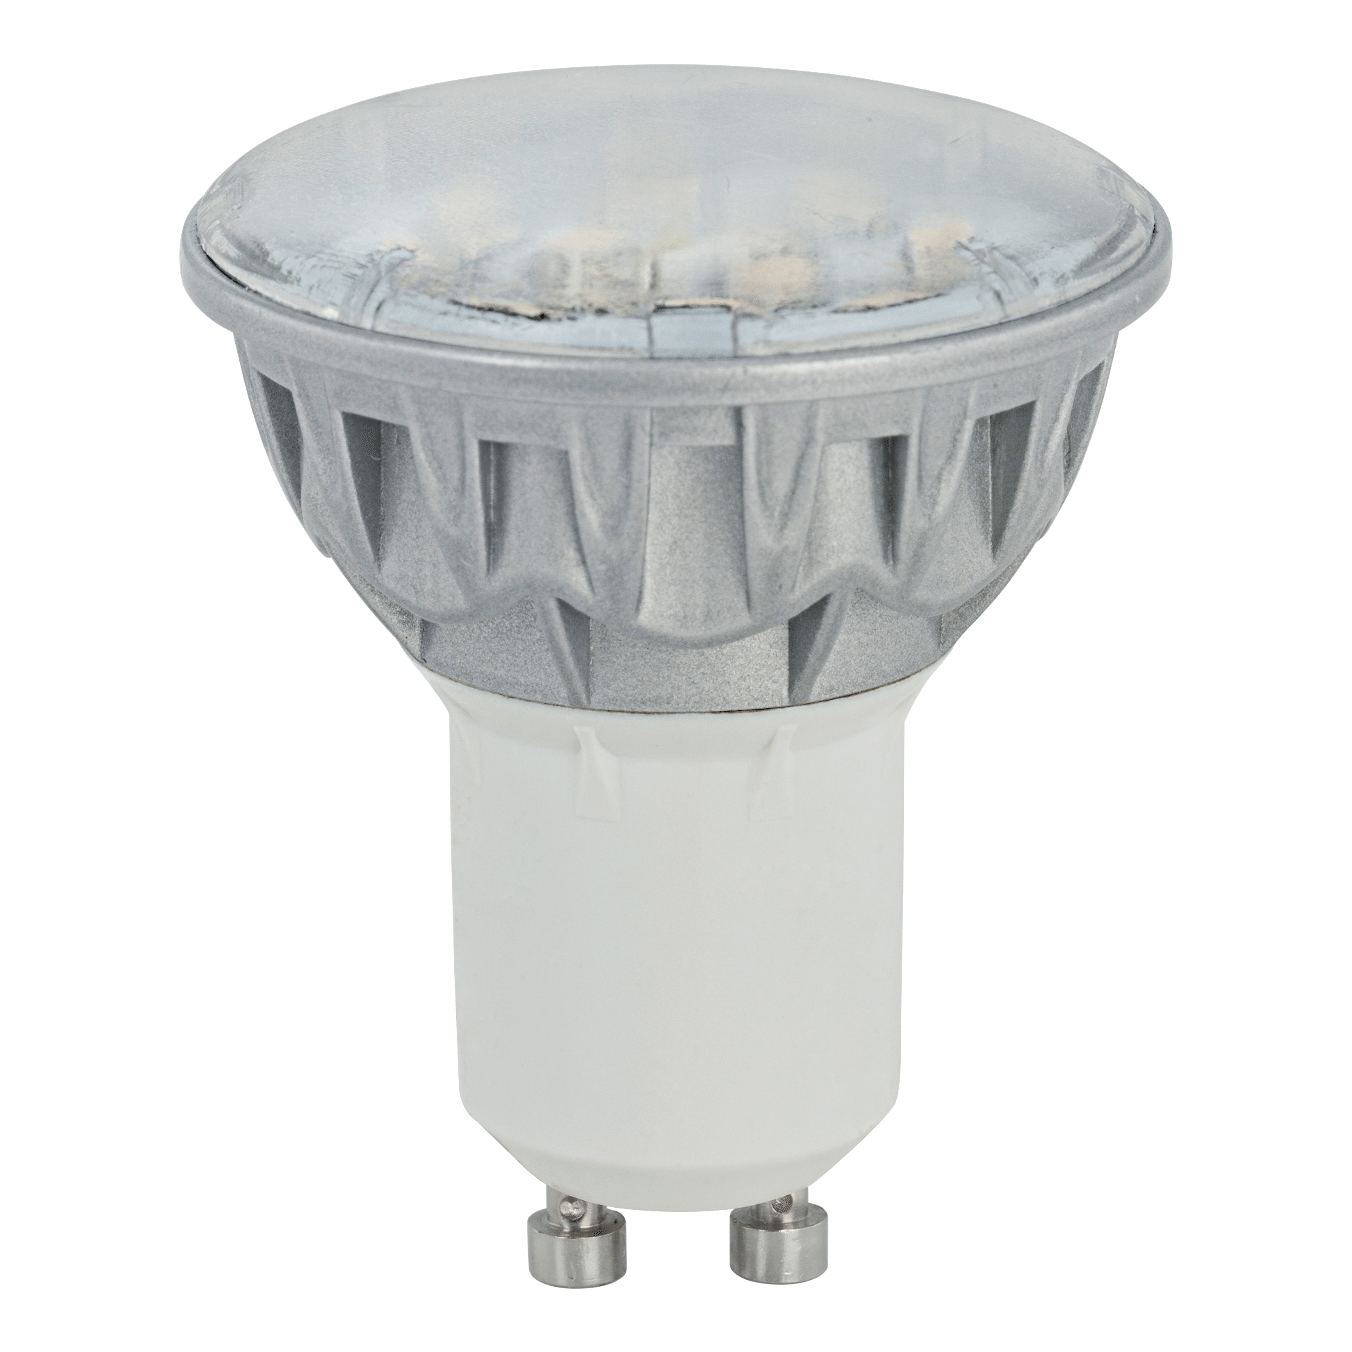 LED sijalica 5W - 11424